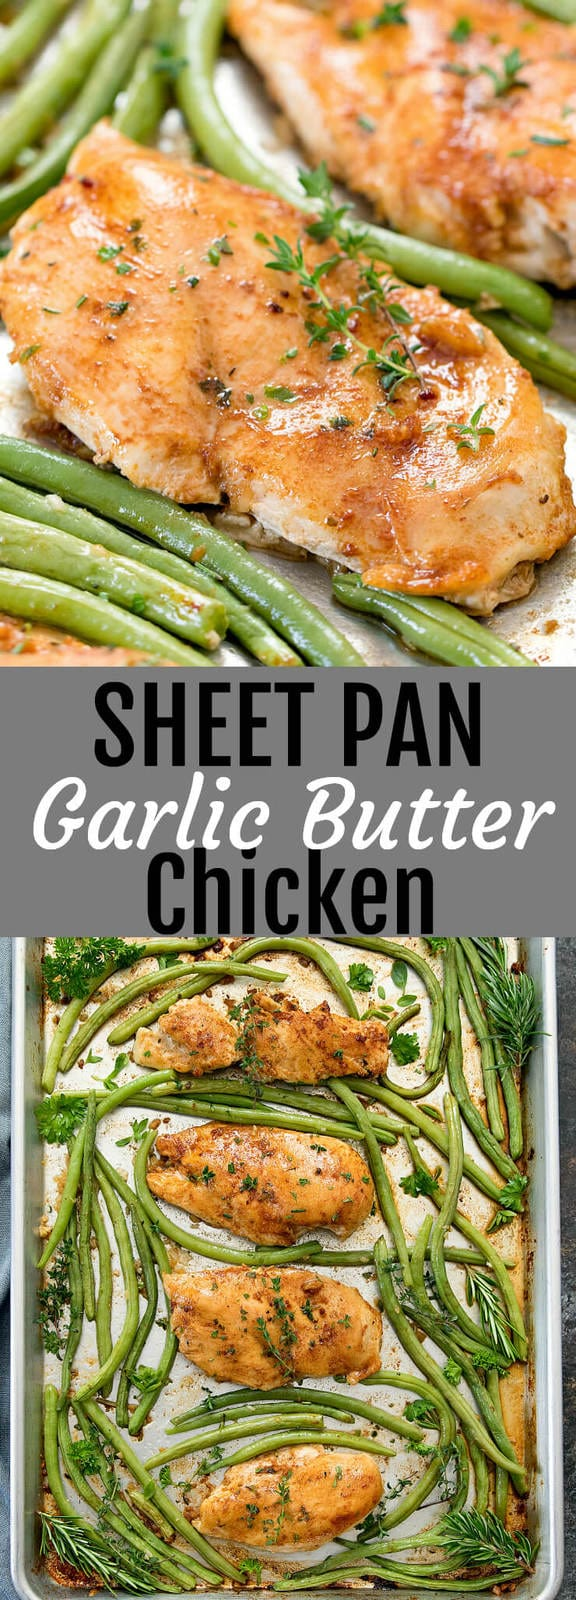 Garlic Butter Chicken cooked on a single sheet pan for an easy meal with minimal clean-up.